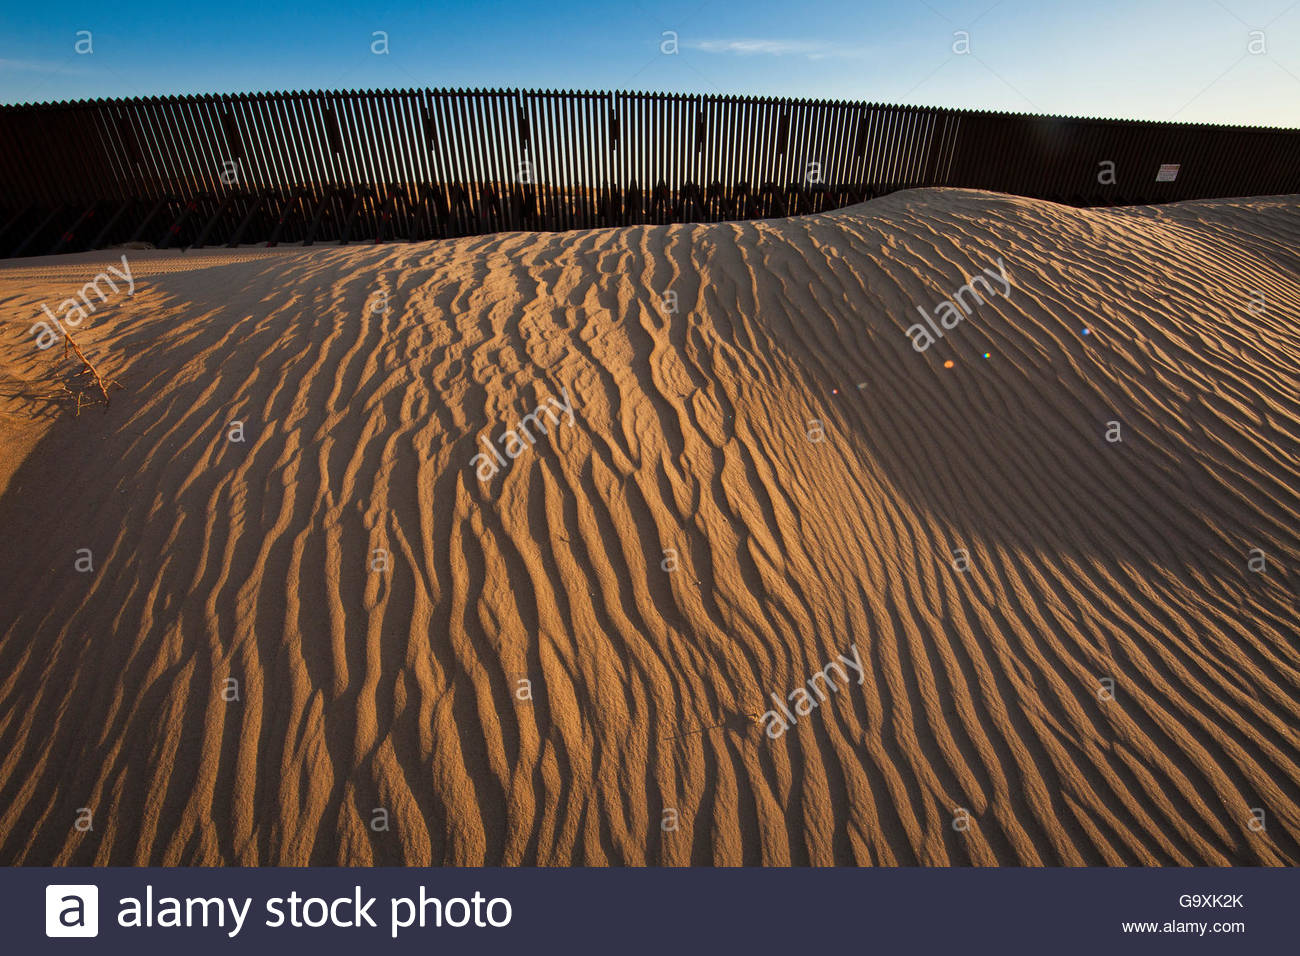 US-Mexico border wall with Algodones Sand Dunes, one of North Americas largest dunefields, California, USA. March - Stock Image